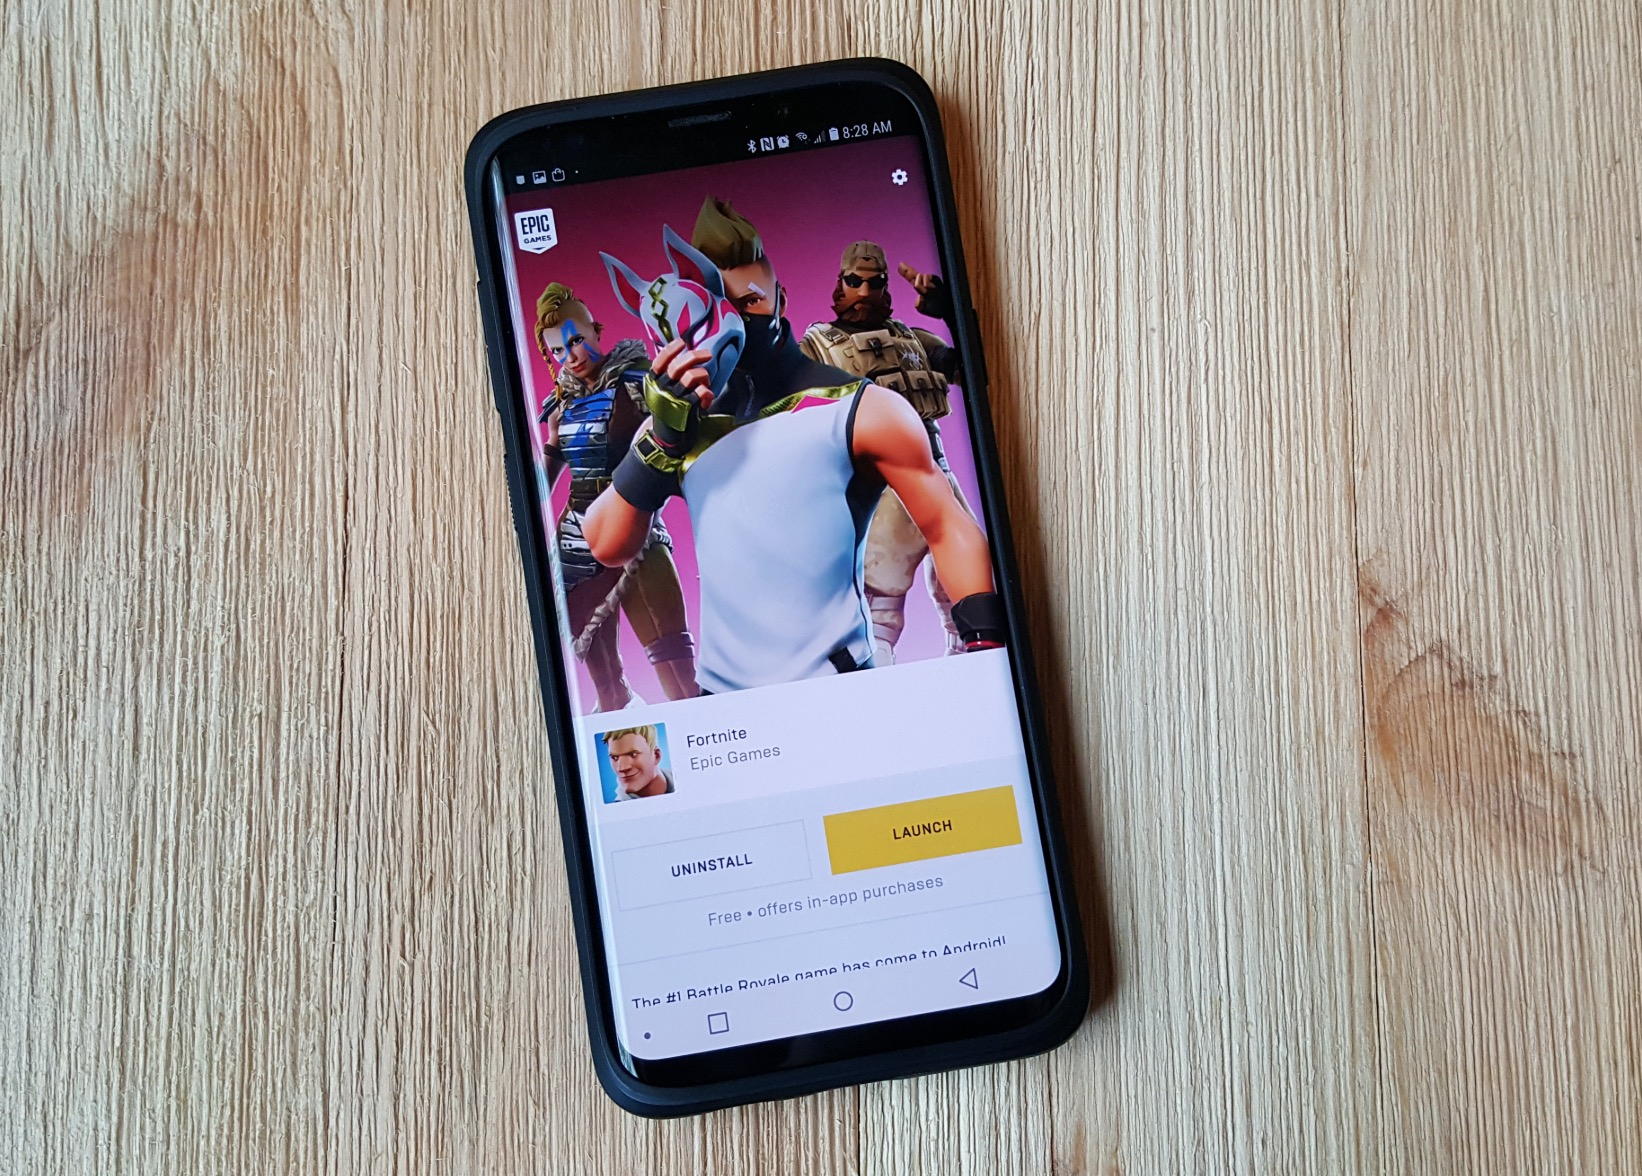 Google telling users that the Play Store doesn't have Fortnite